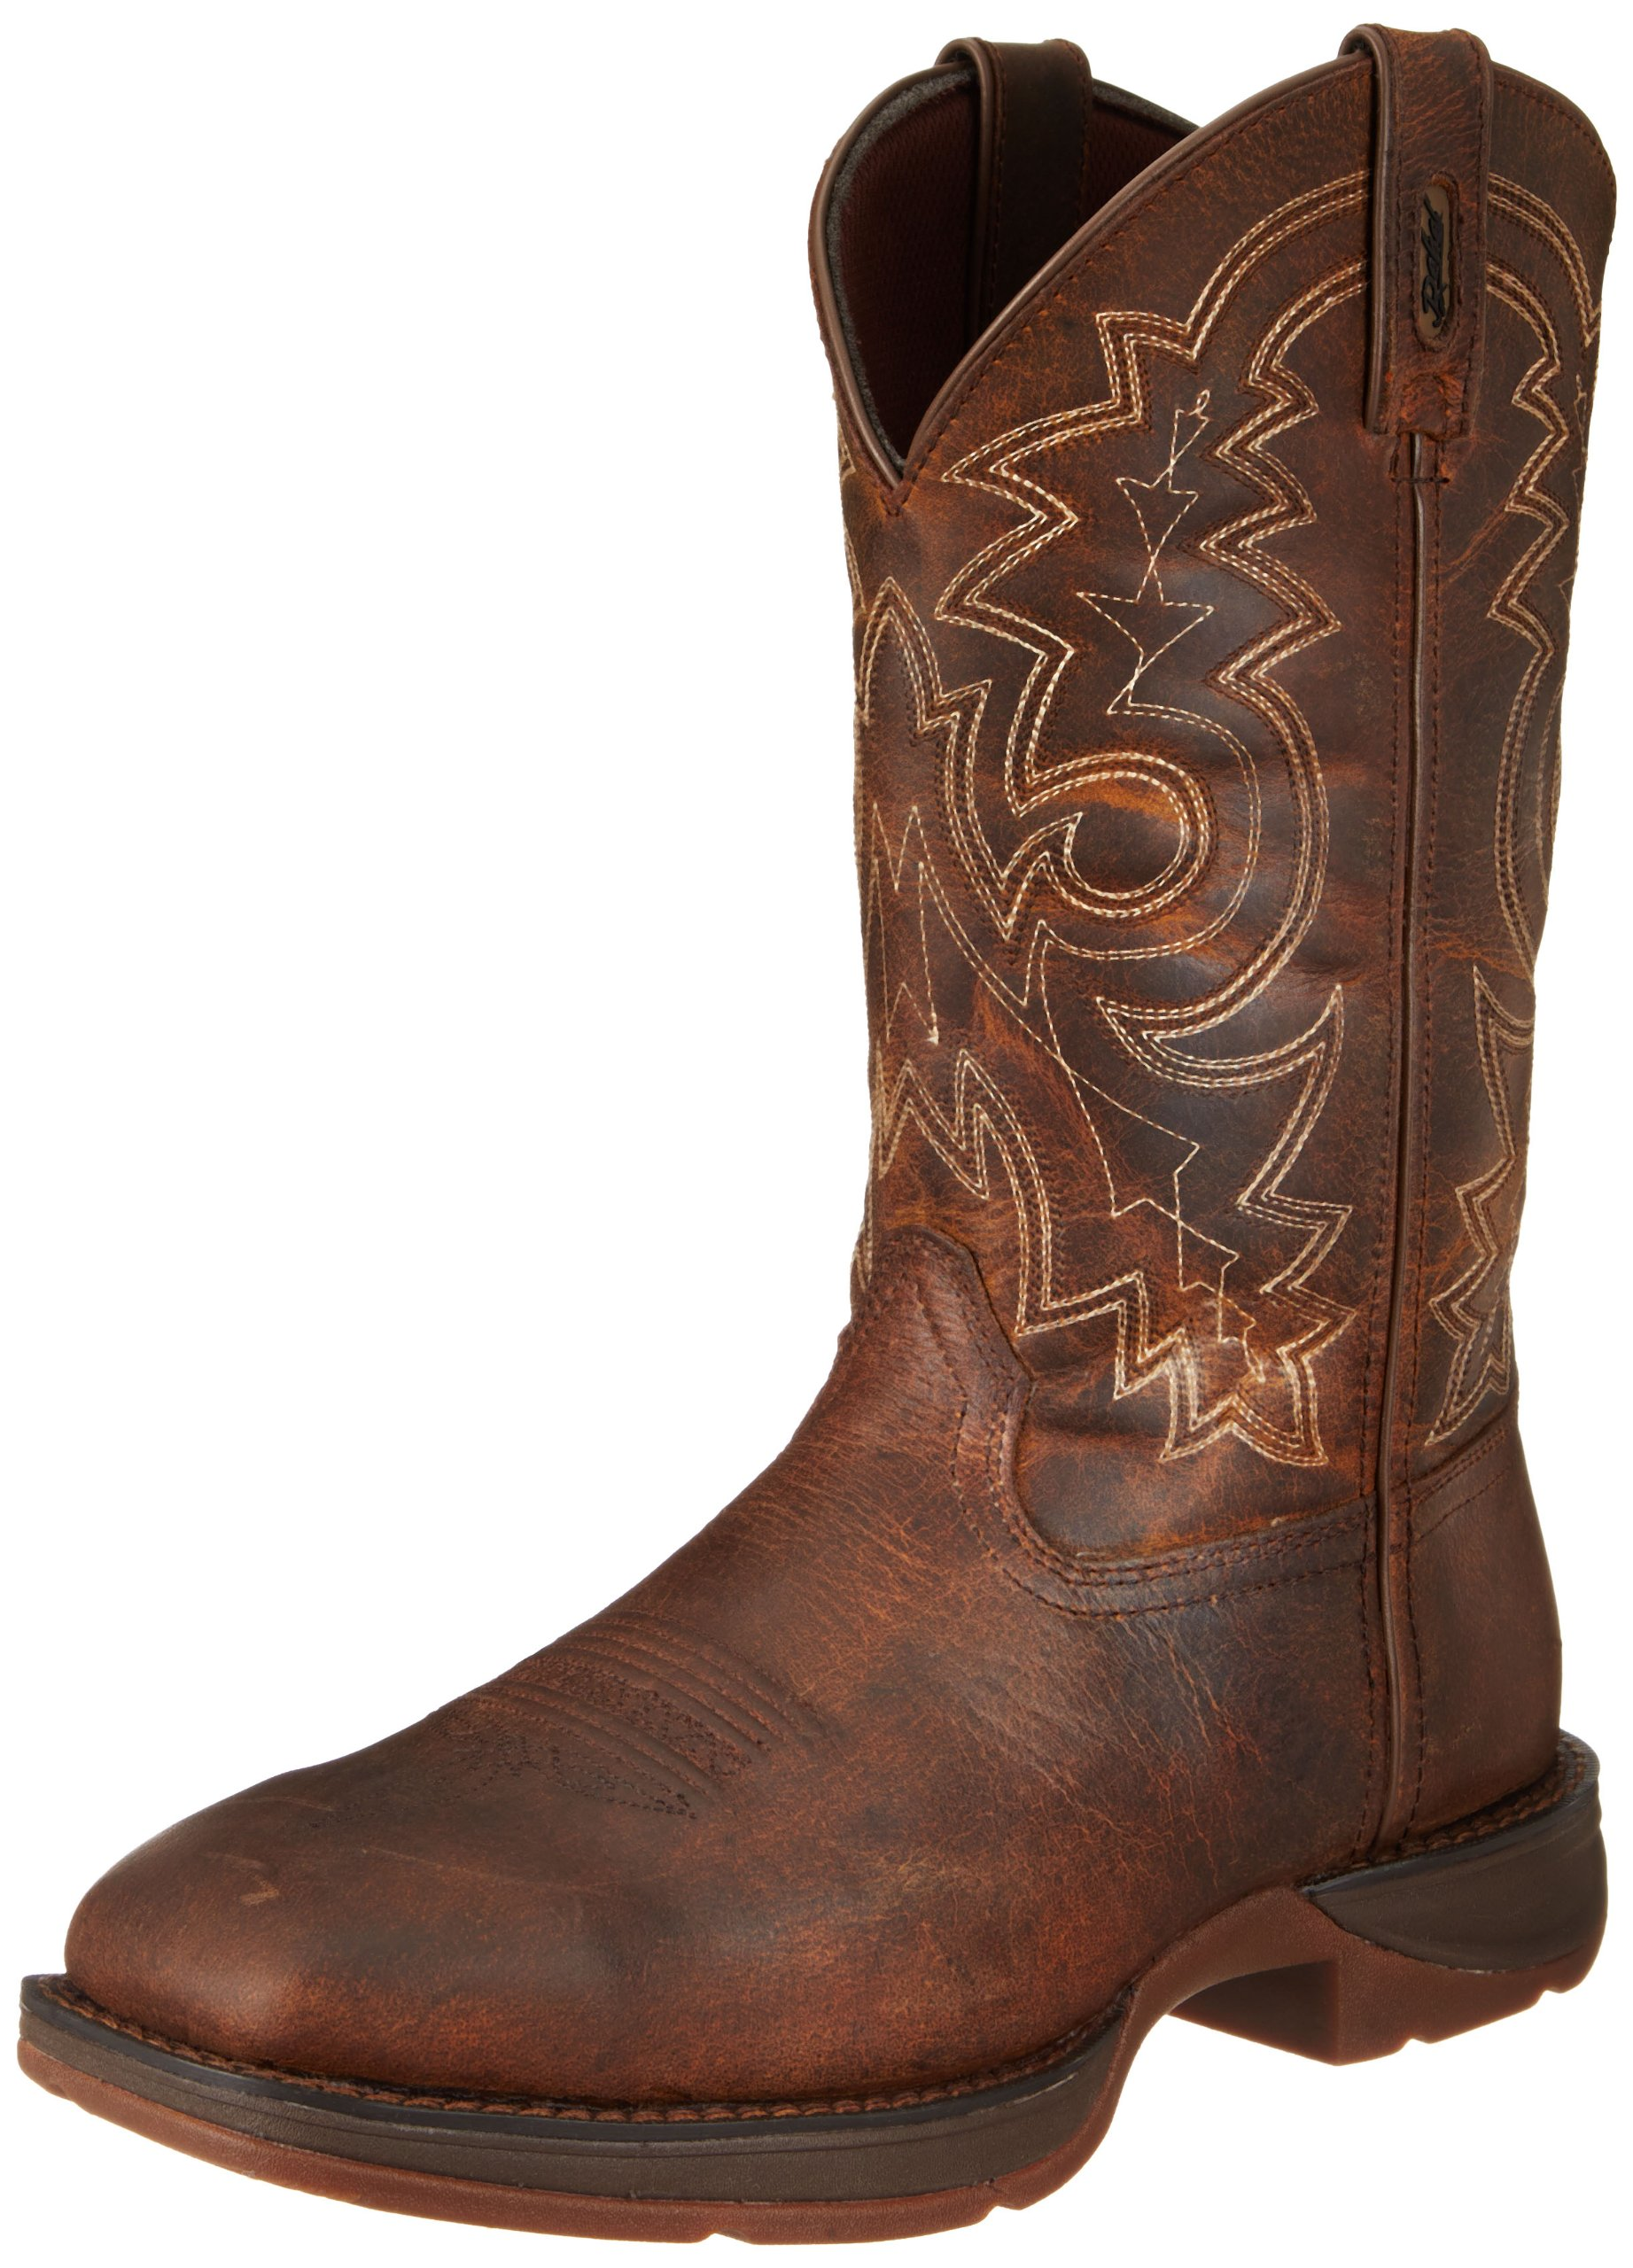 Durango Men's 11 Inch Pull-on Steel Toe DB4343 Western Boot,Brown,12 W US